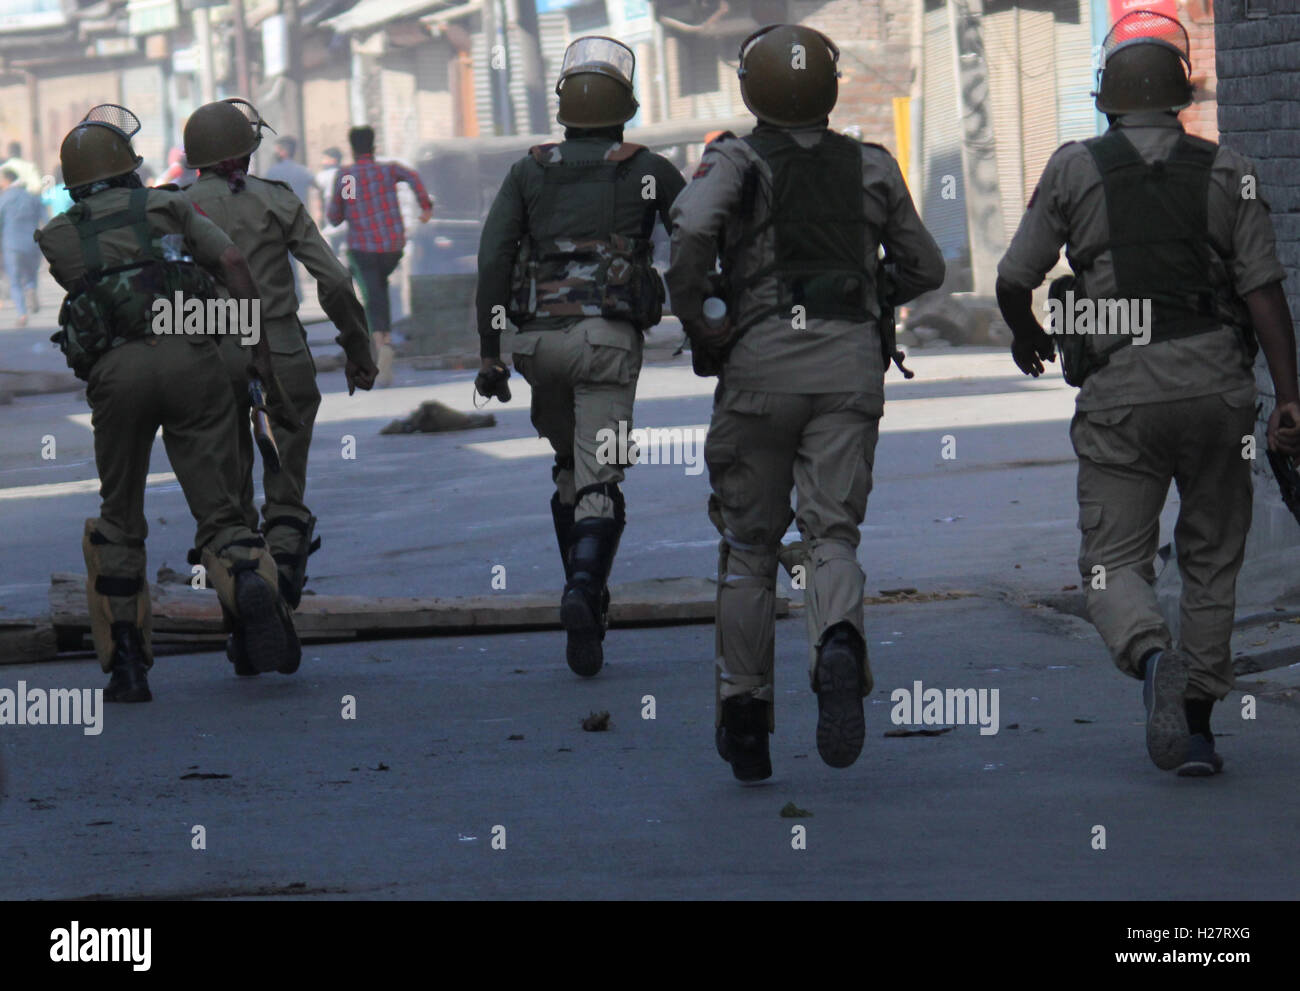 Srinagar, India. 25th Sep, 2016. Kashmiri Muslim protestors run for cover as they are chased by armed forces in - Stock Image